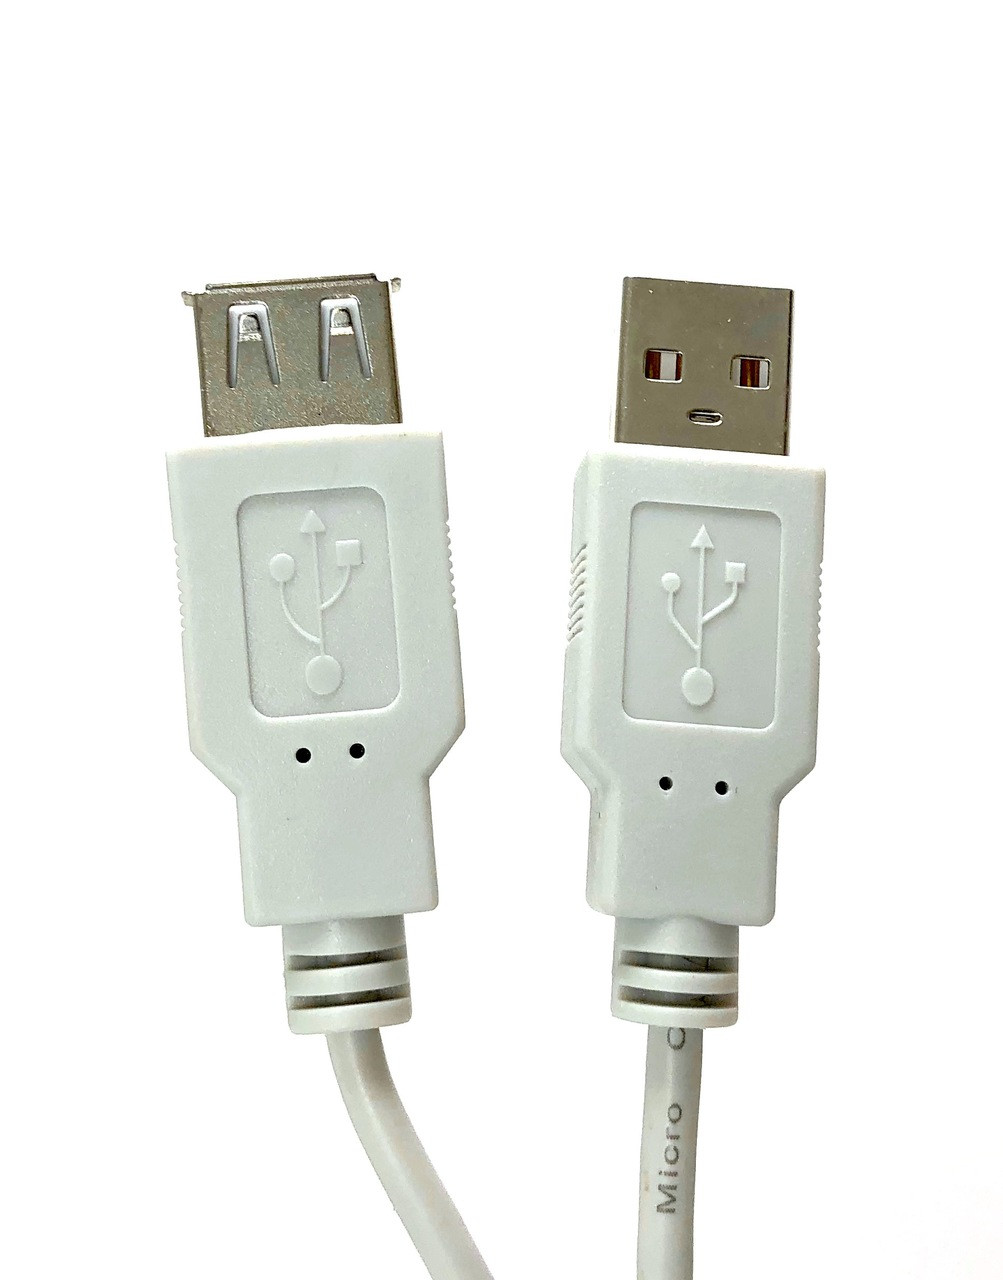 USB 2.0 Type A Male to Female Extension Cable - Beige - 10ft